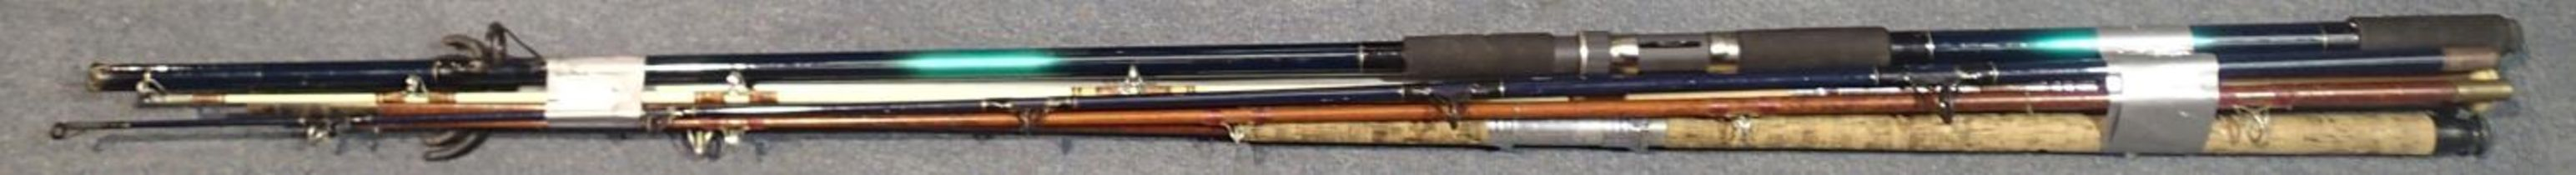 Shakespeare composite beech caster with other rods and rests. Not available for in-house P&P,